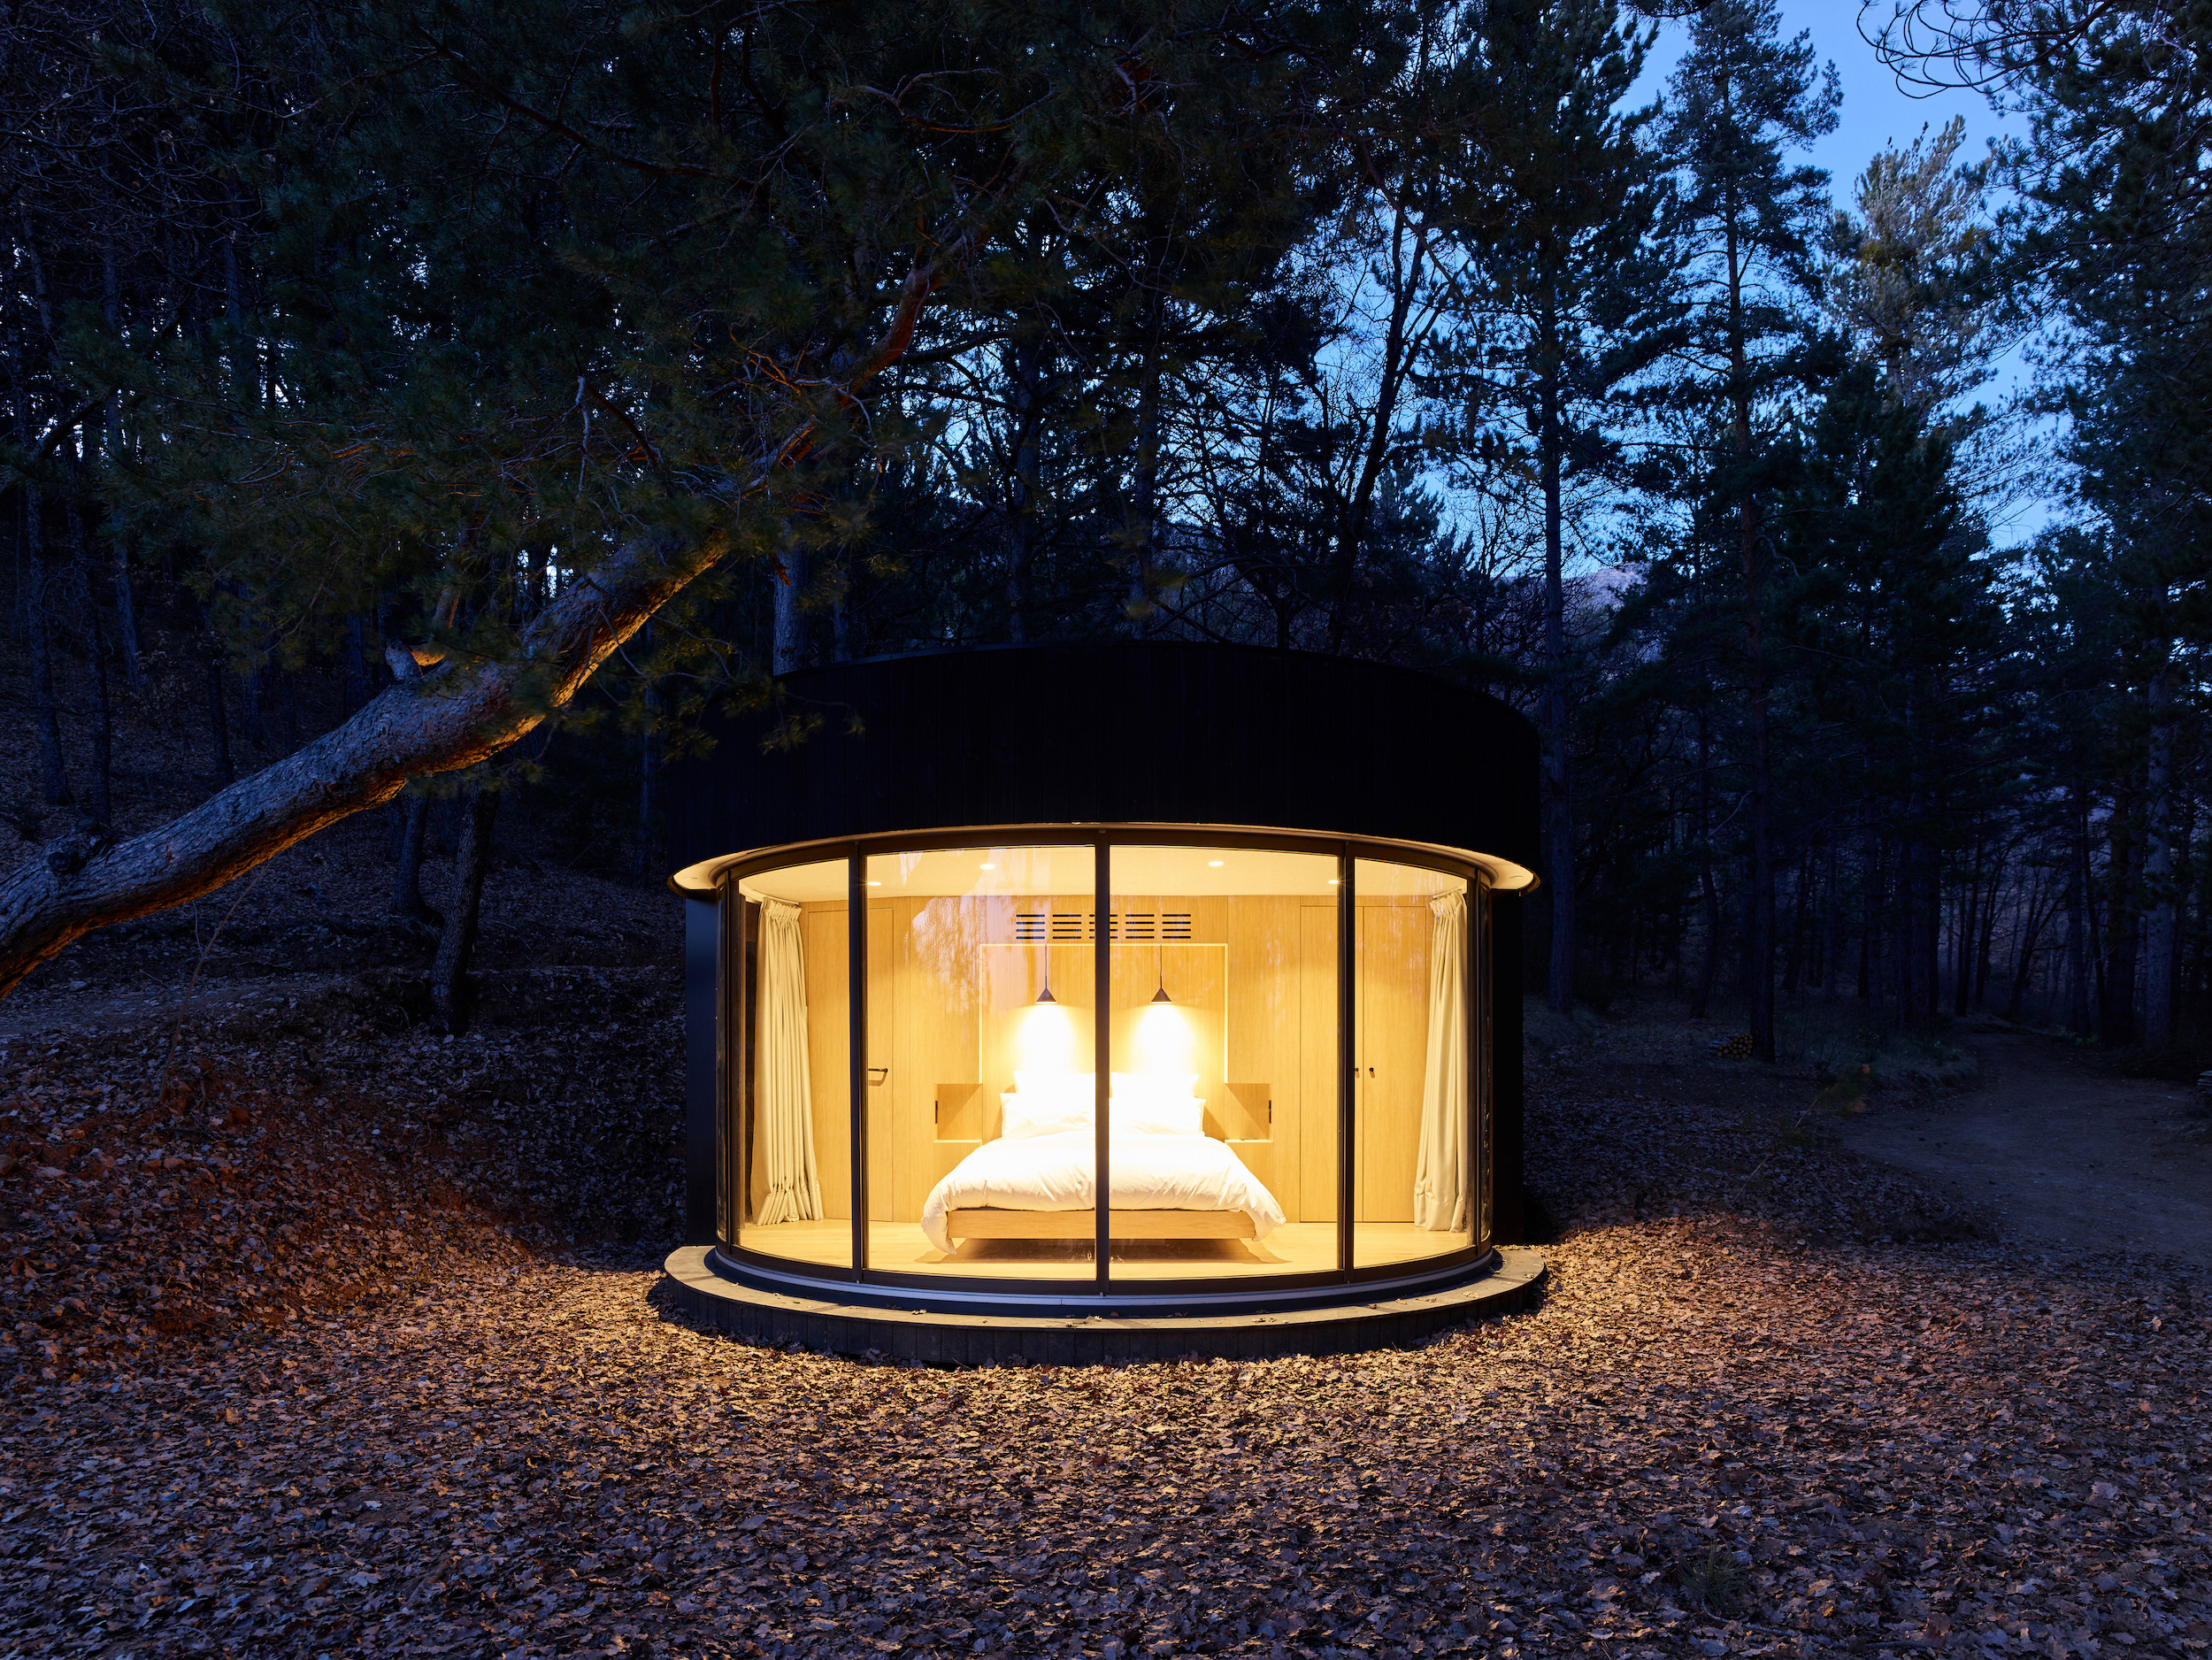 The prefabricated LumiPod was transported to the site in parts and took two days to install